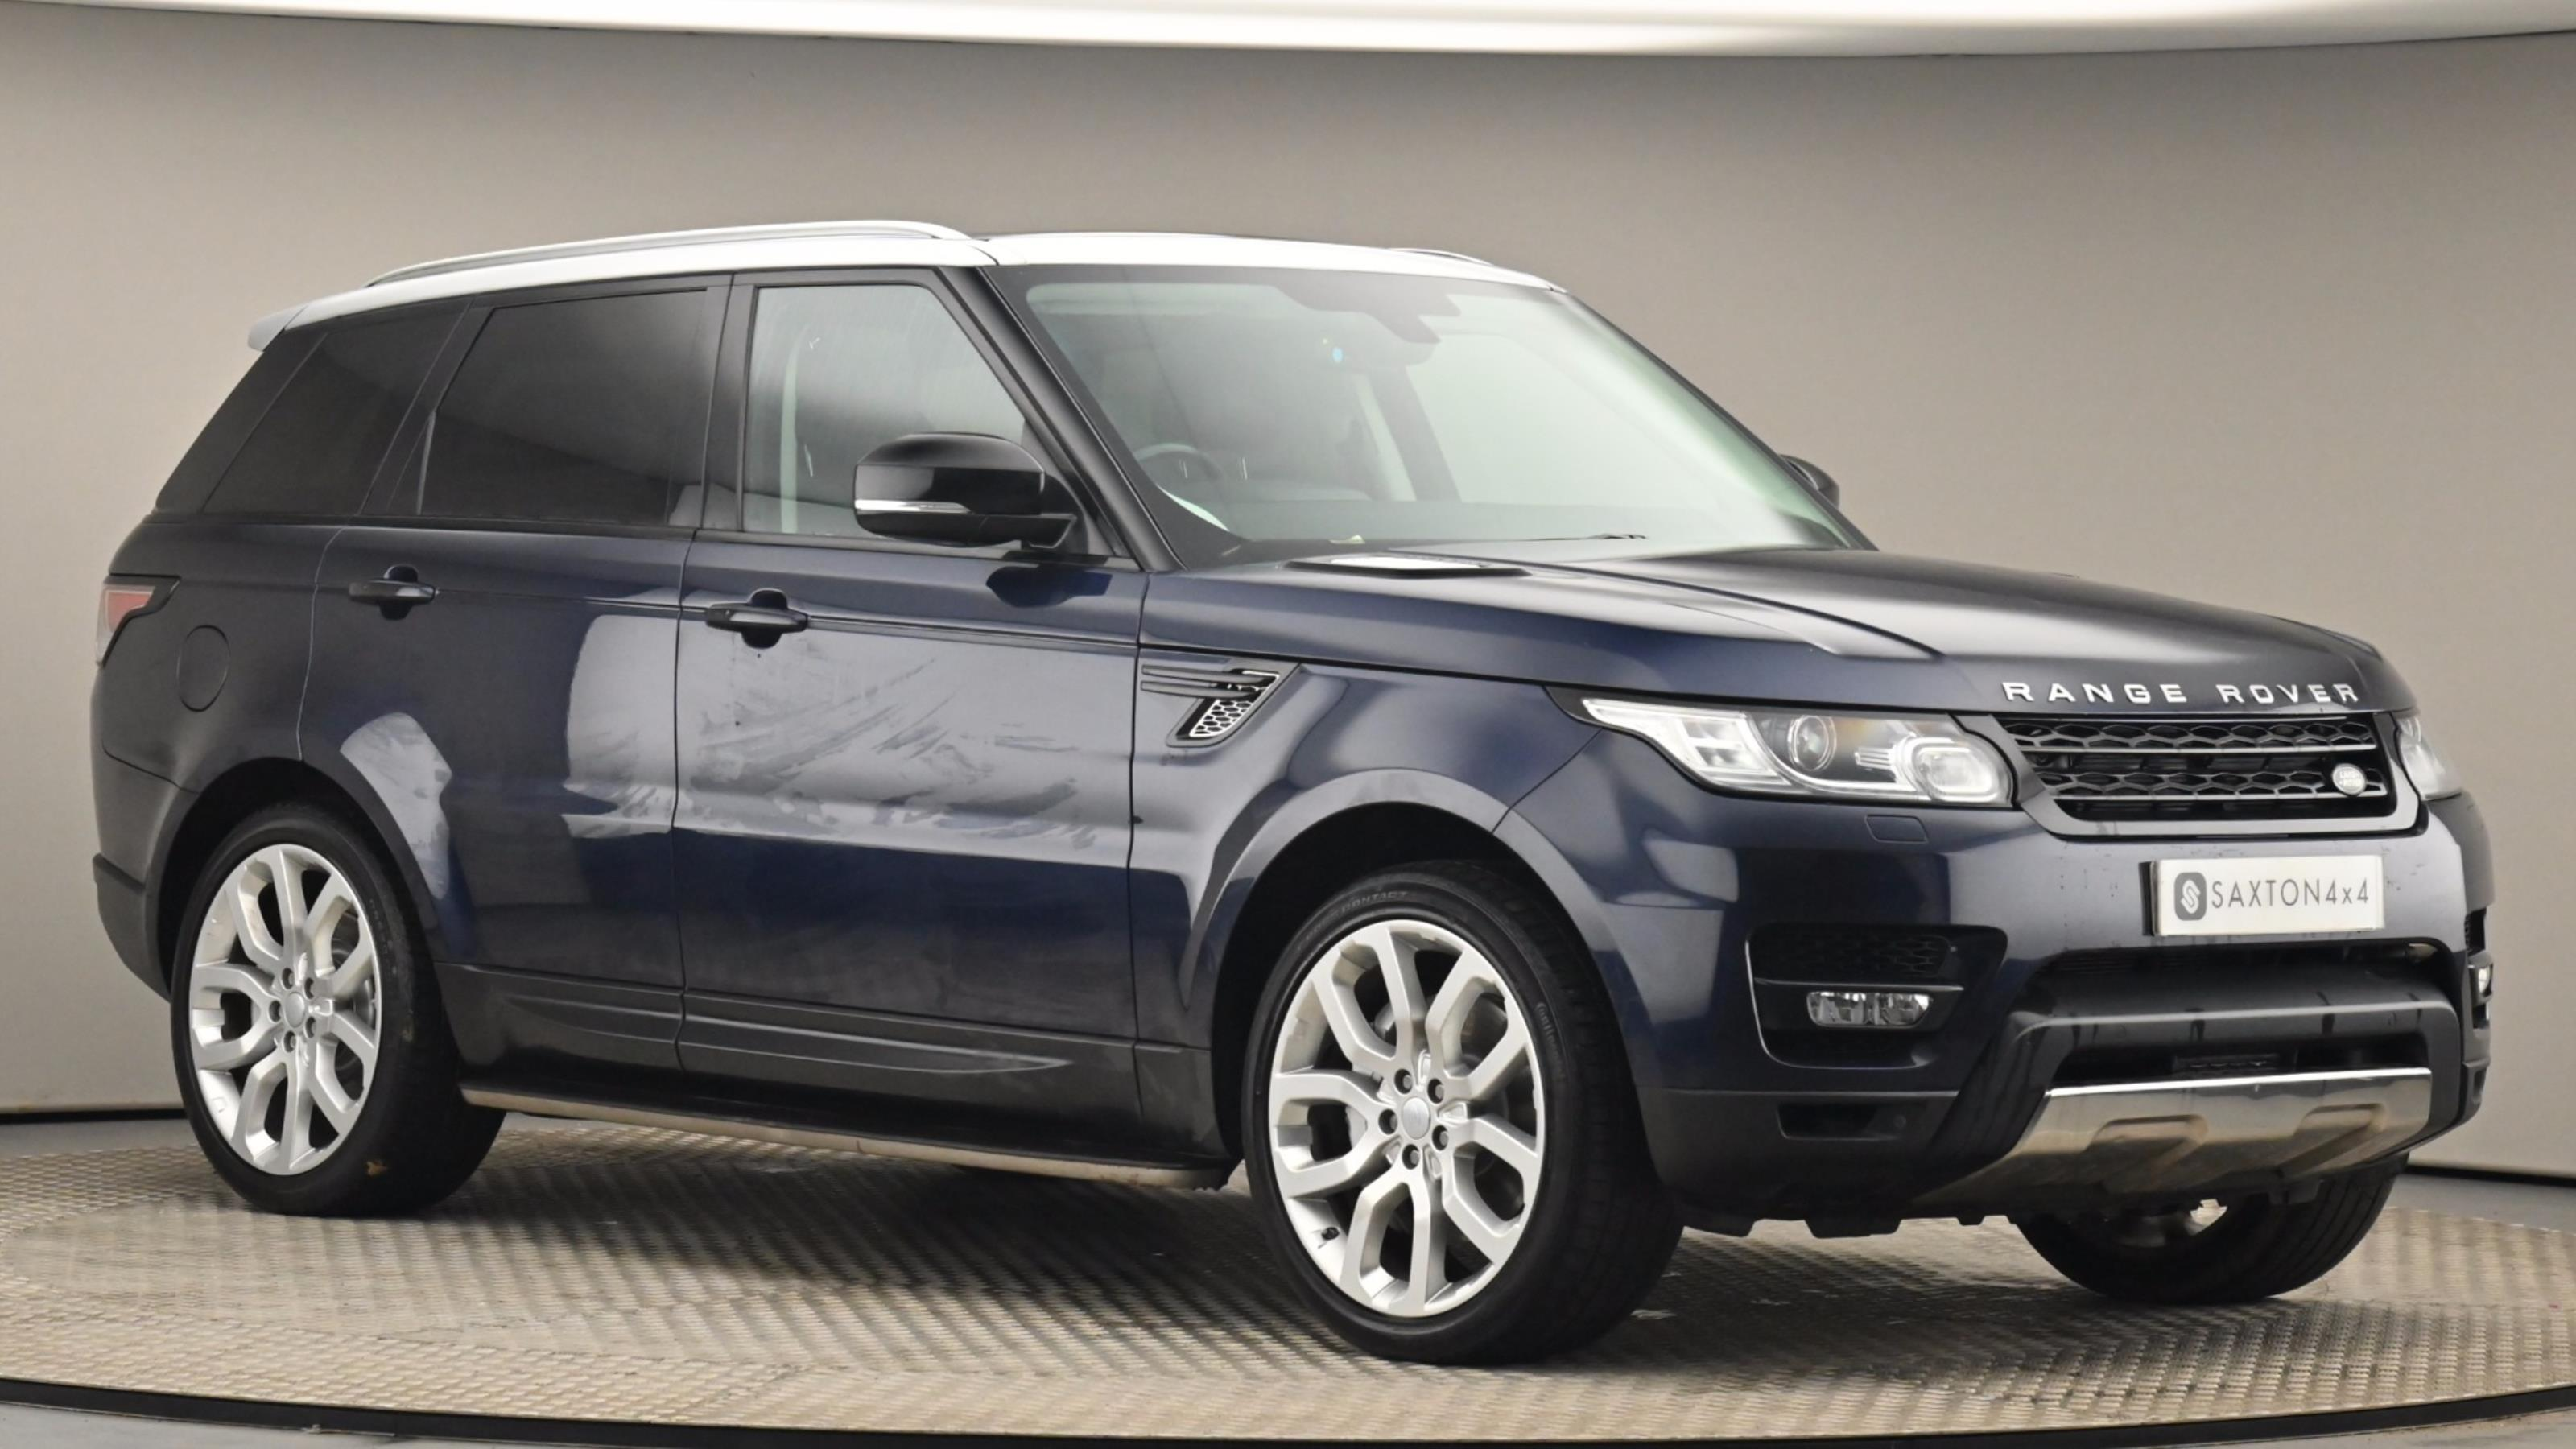 Used 2016 Land Rover RANGE ROVER SPORT 3.0 SDV6 [306] HSE Dynamic 5dr Auto at Saxton4x4